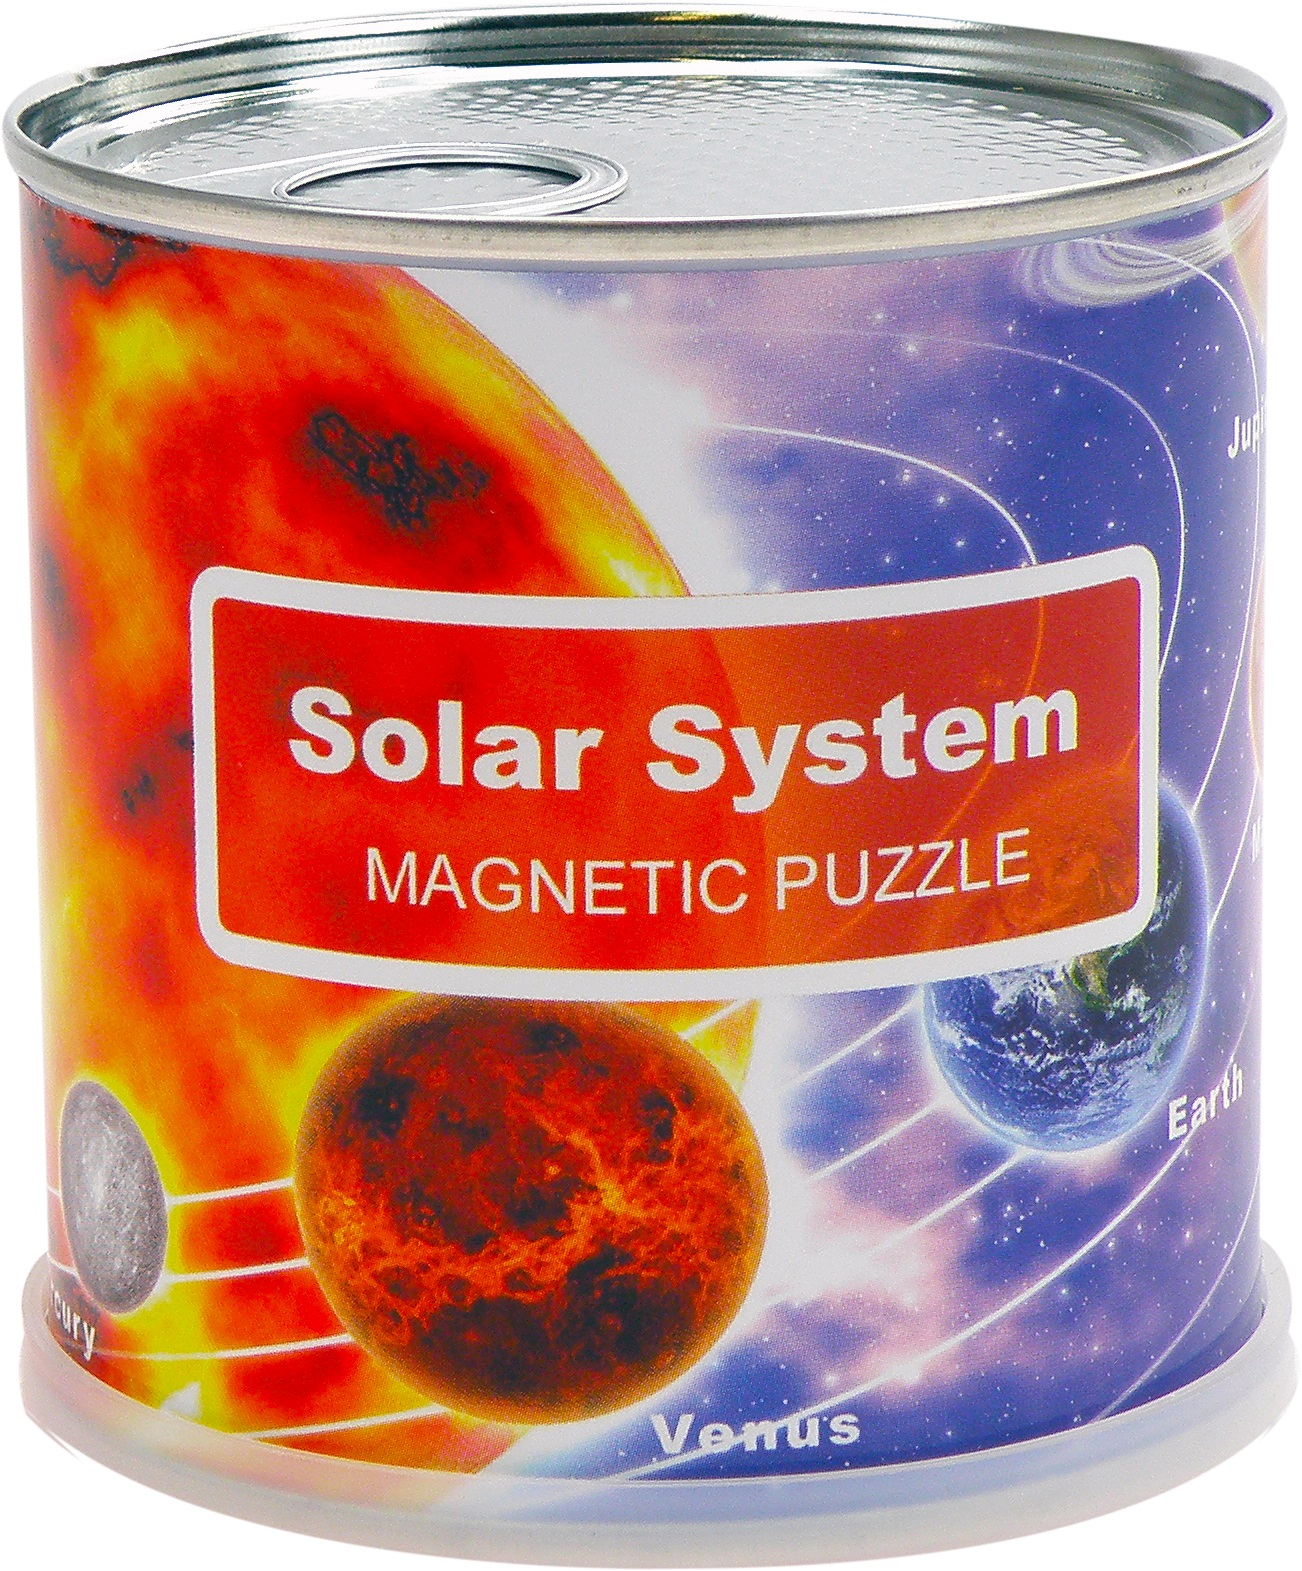 Solar System magnets